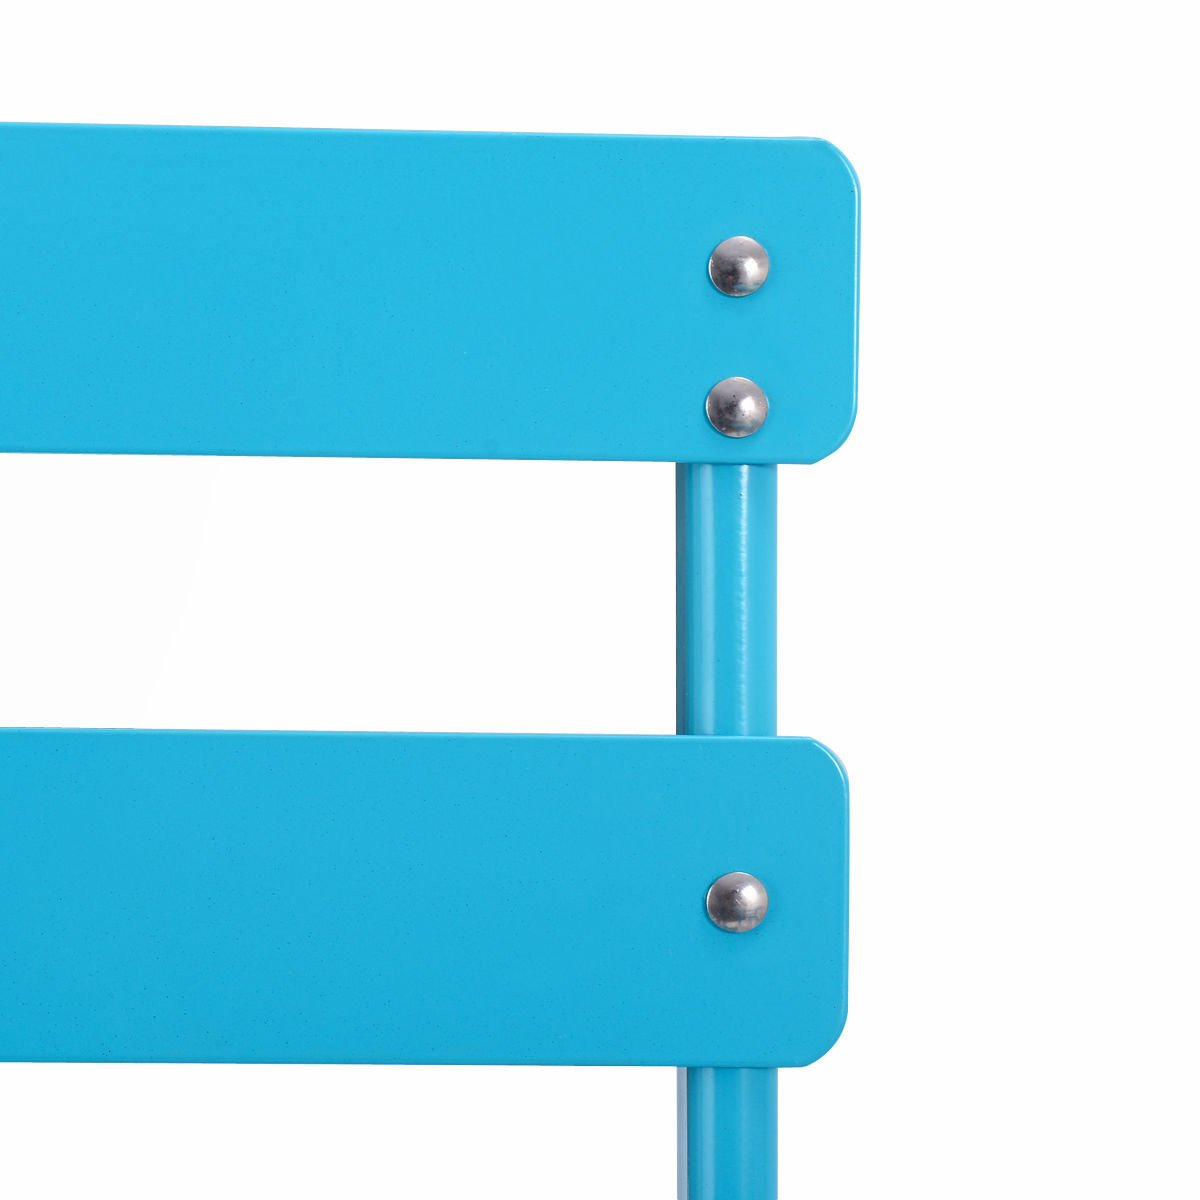 3 Pcs. Blue Table Chair Set Foldable Outdoor Patio Garden Pool Metal Furniture by Allblessings (Image #6)